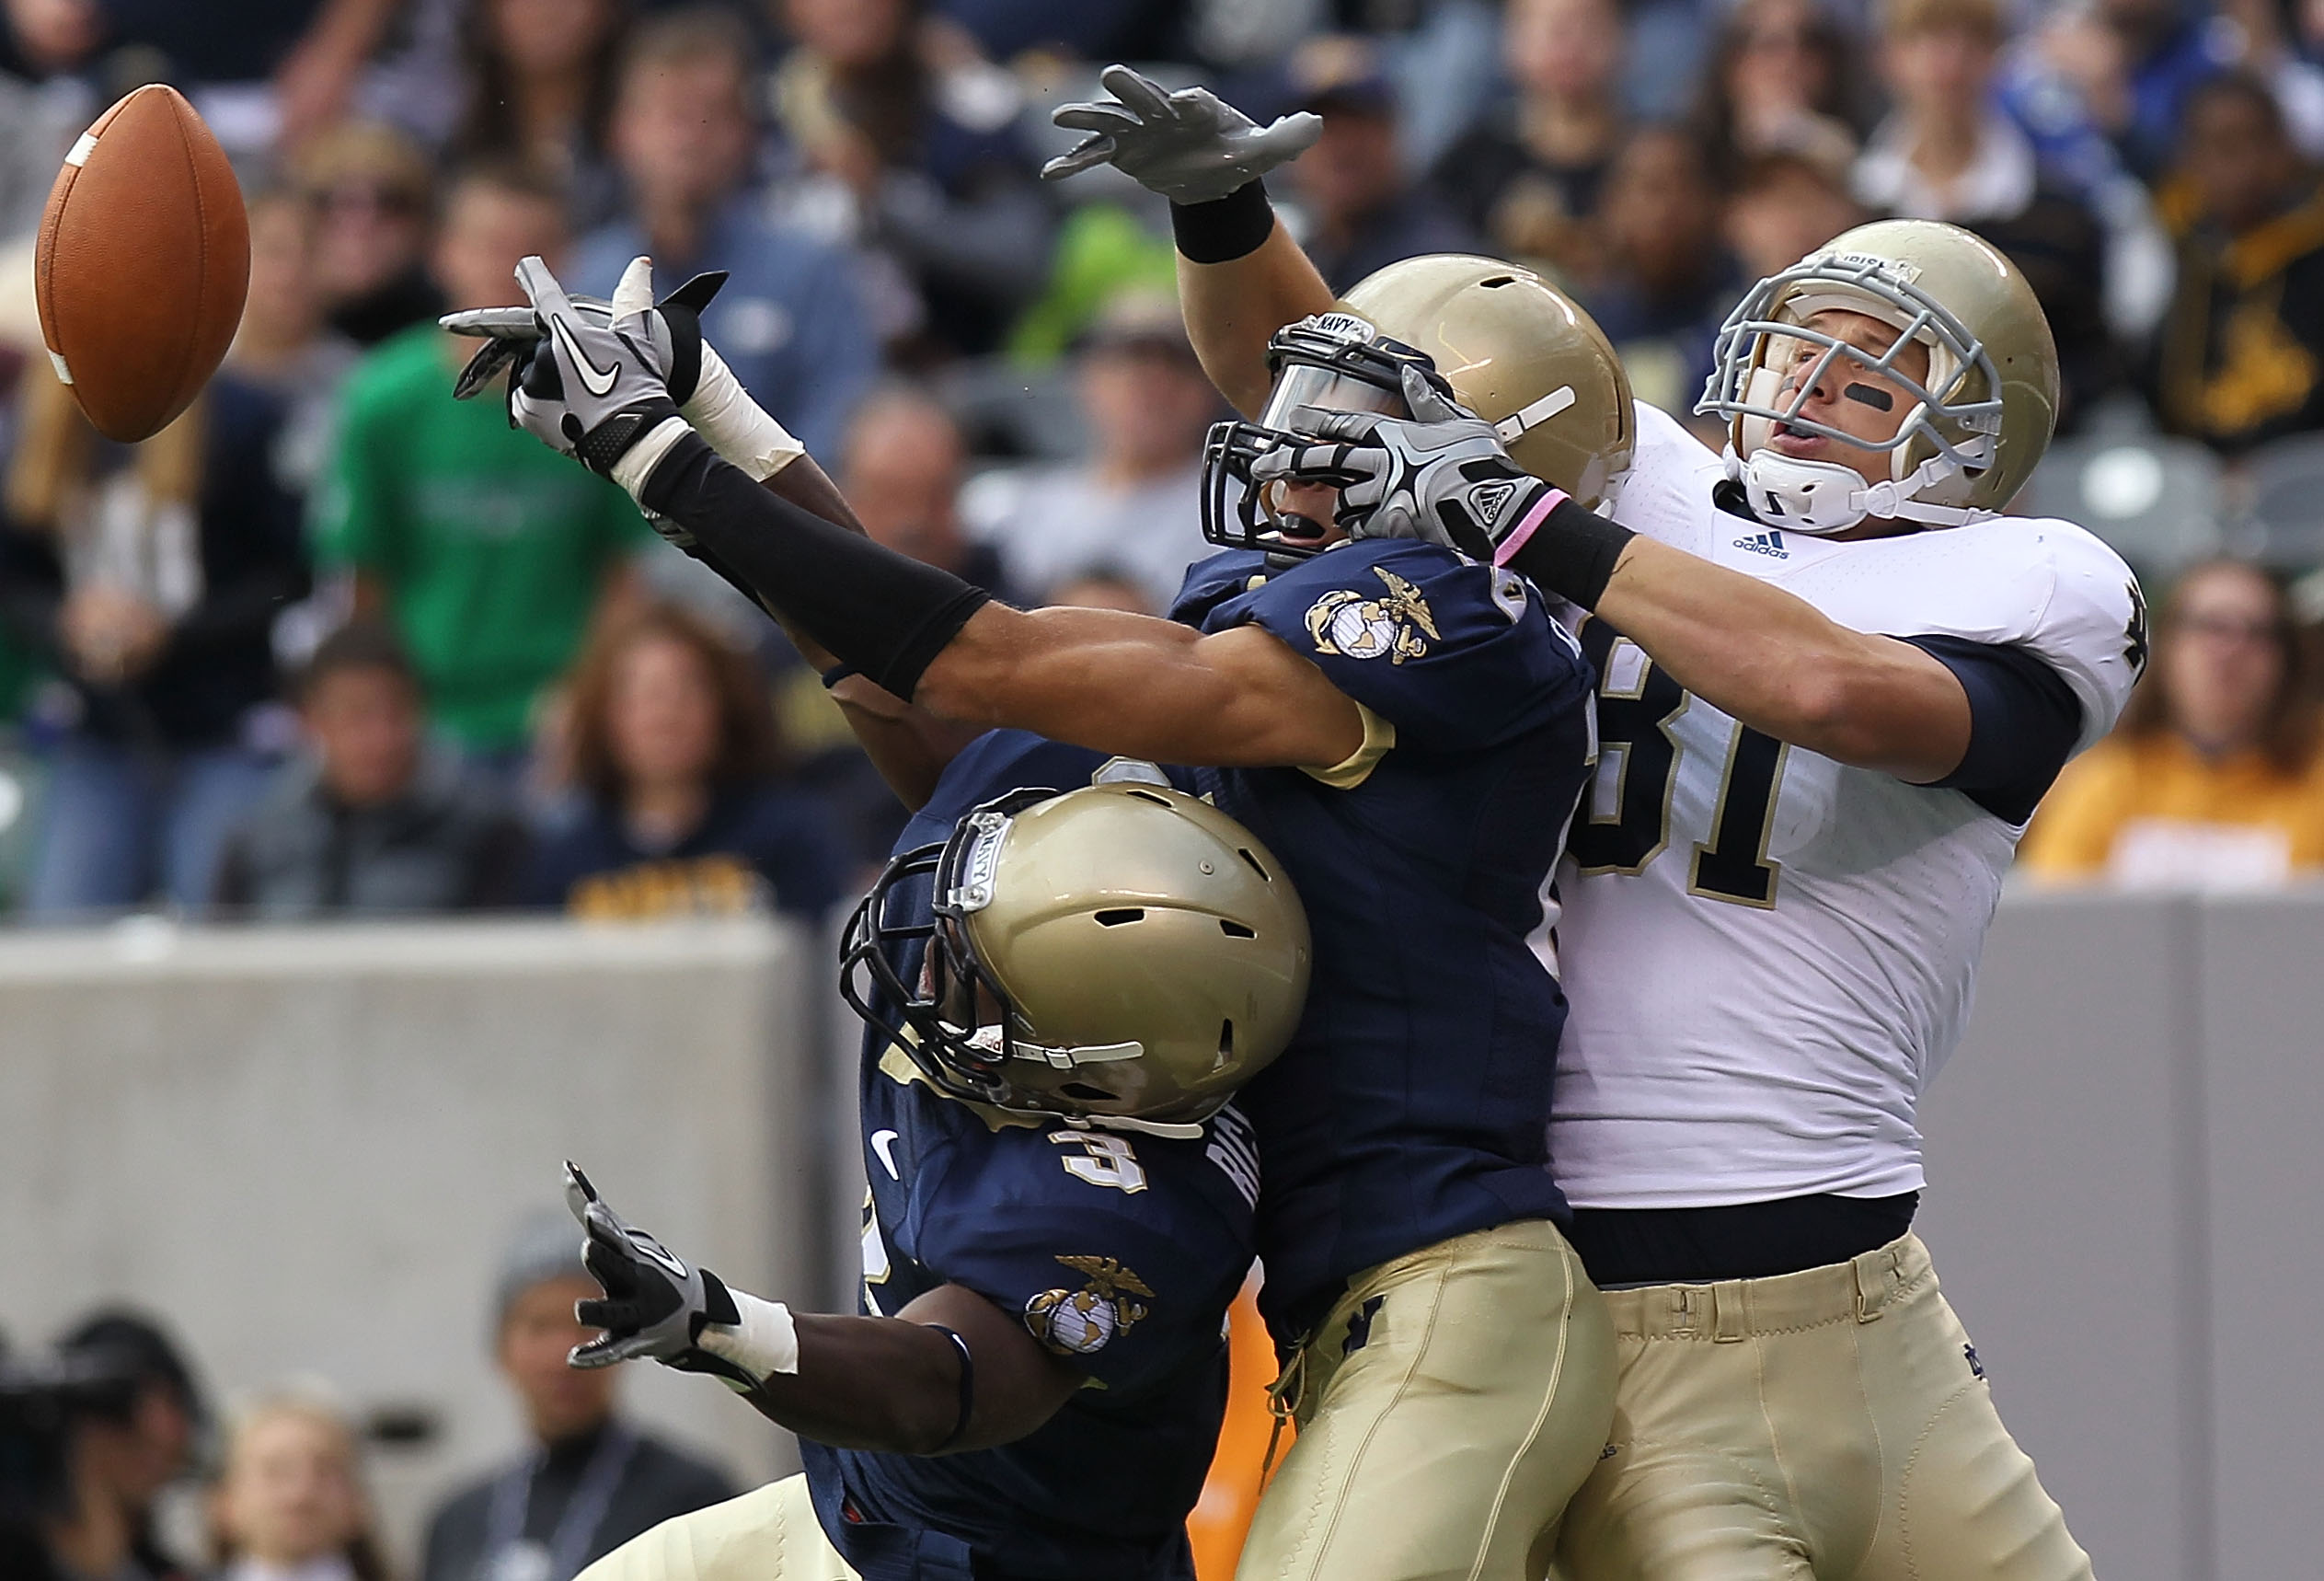 EAST RUTHERFORD, NJ - OCTOBER 23: (L-R) De'Von Richardson #3 and Kevin Edwards #15 of the Navy Midshipmen break up the pass against John Goodman #81 of the Notre Dame Fighting Irish at New Meadowlands Stadium on October 23, 2010 in East Rutherford, New Je